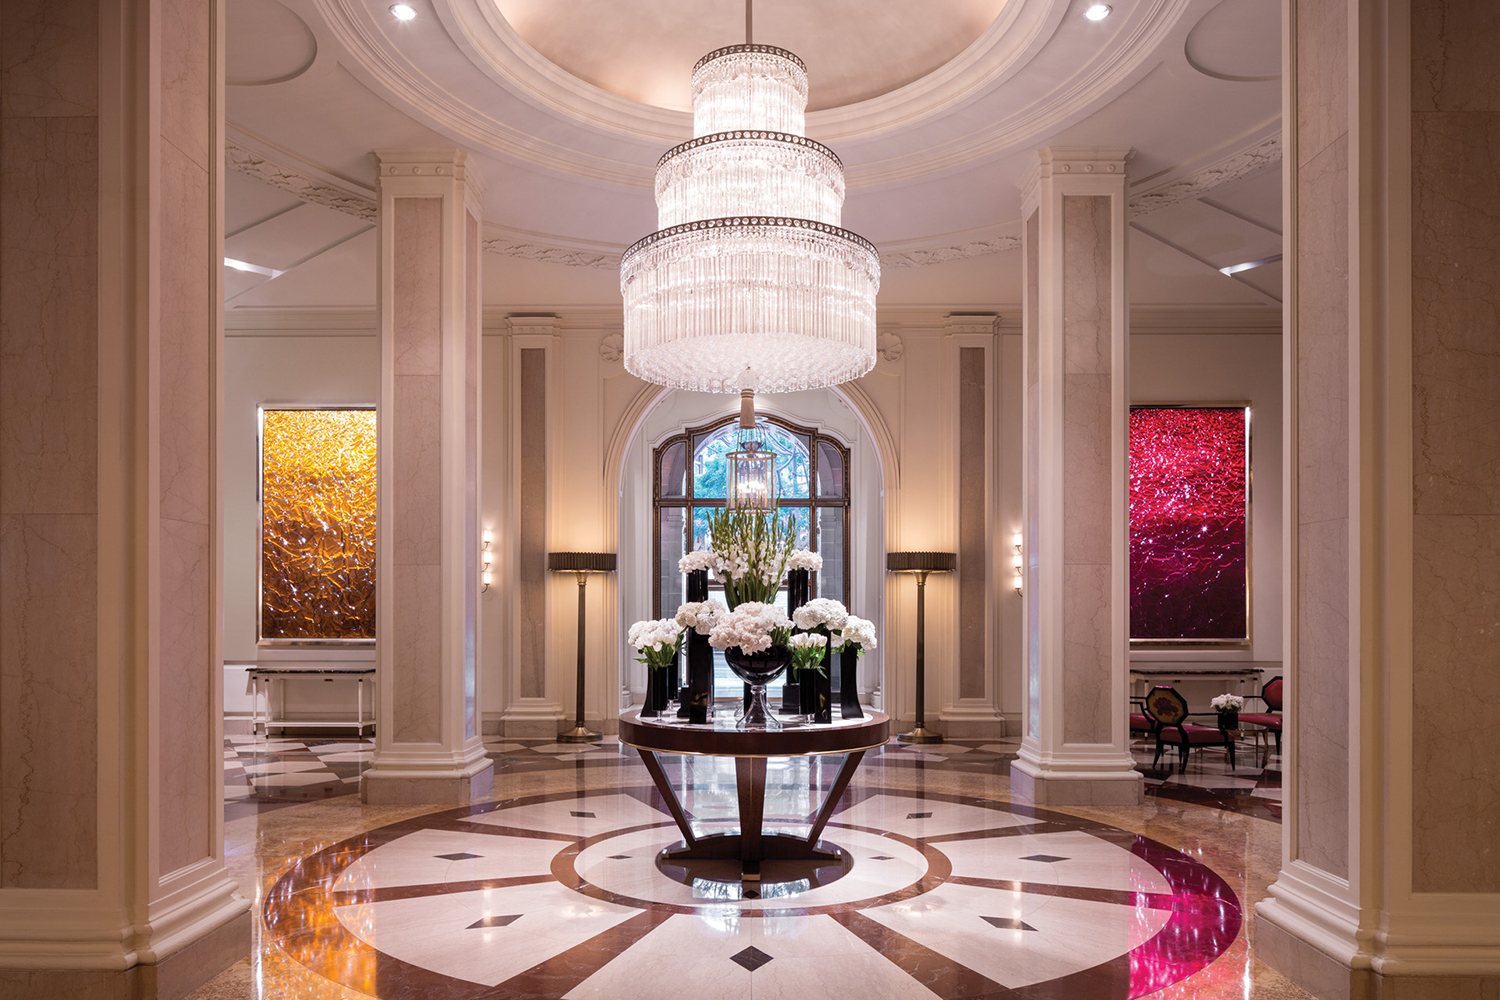 The Wilshire Wing lobby.